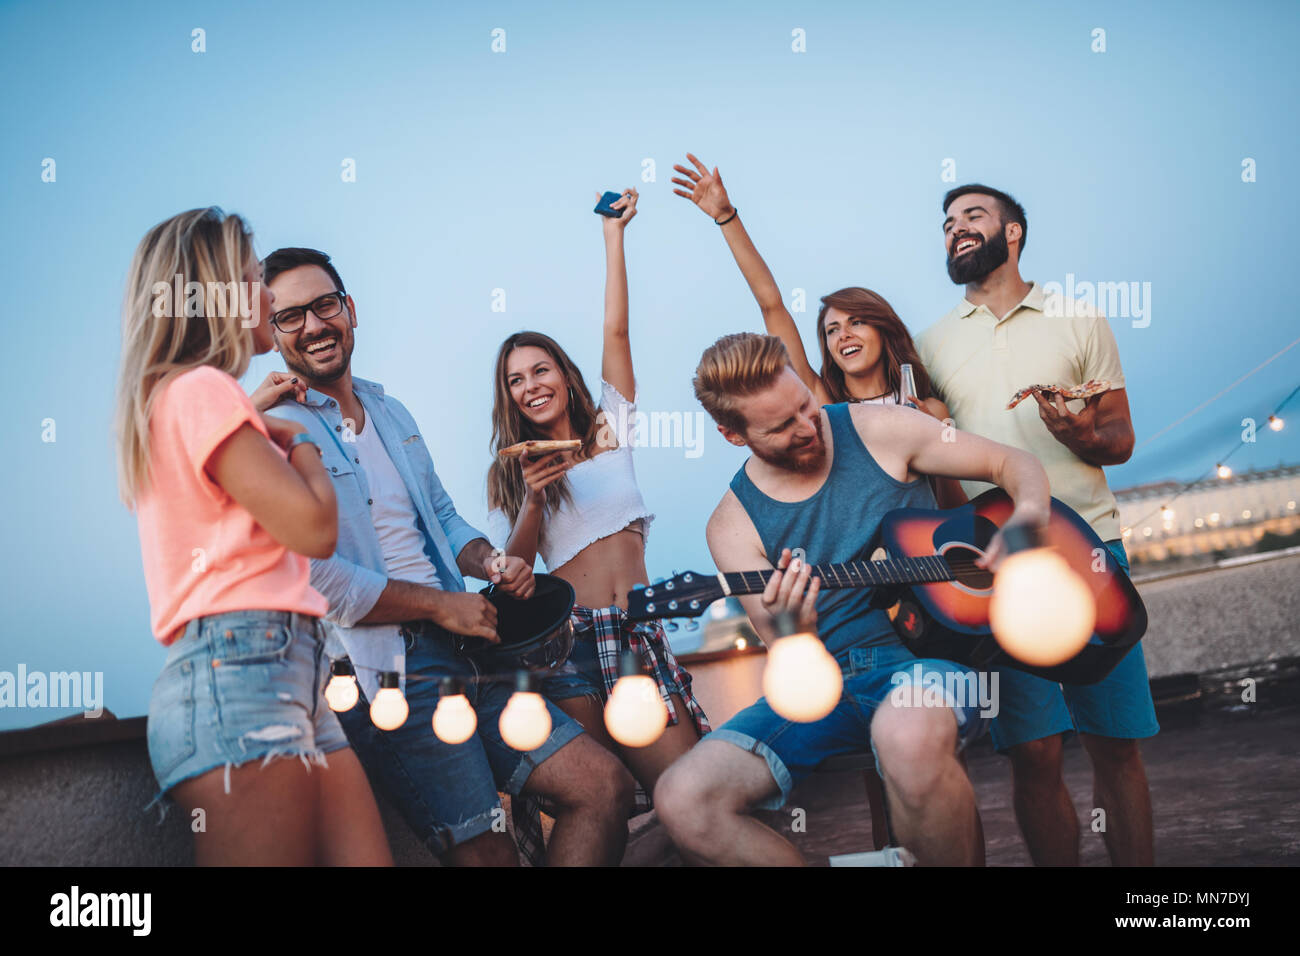 Friends having fun outdoors and are happy - Stock Image